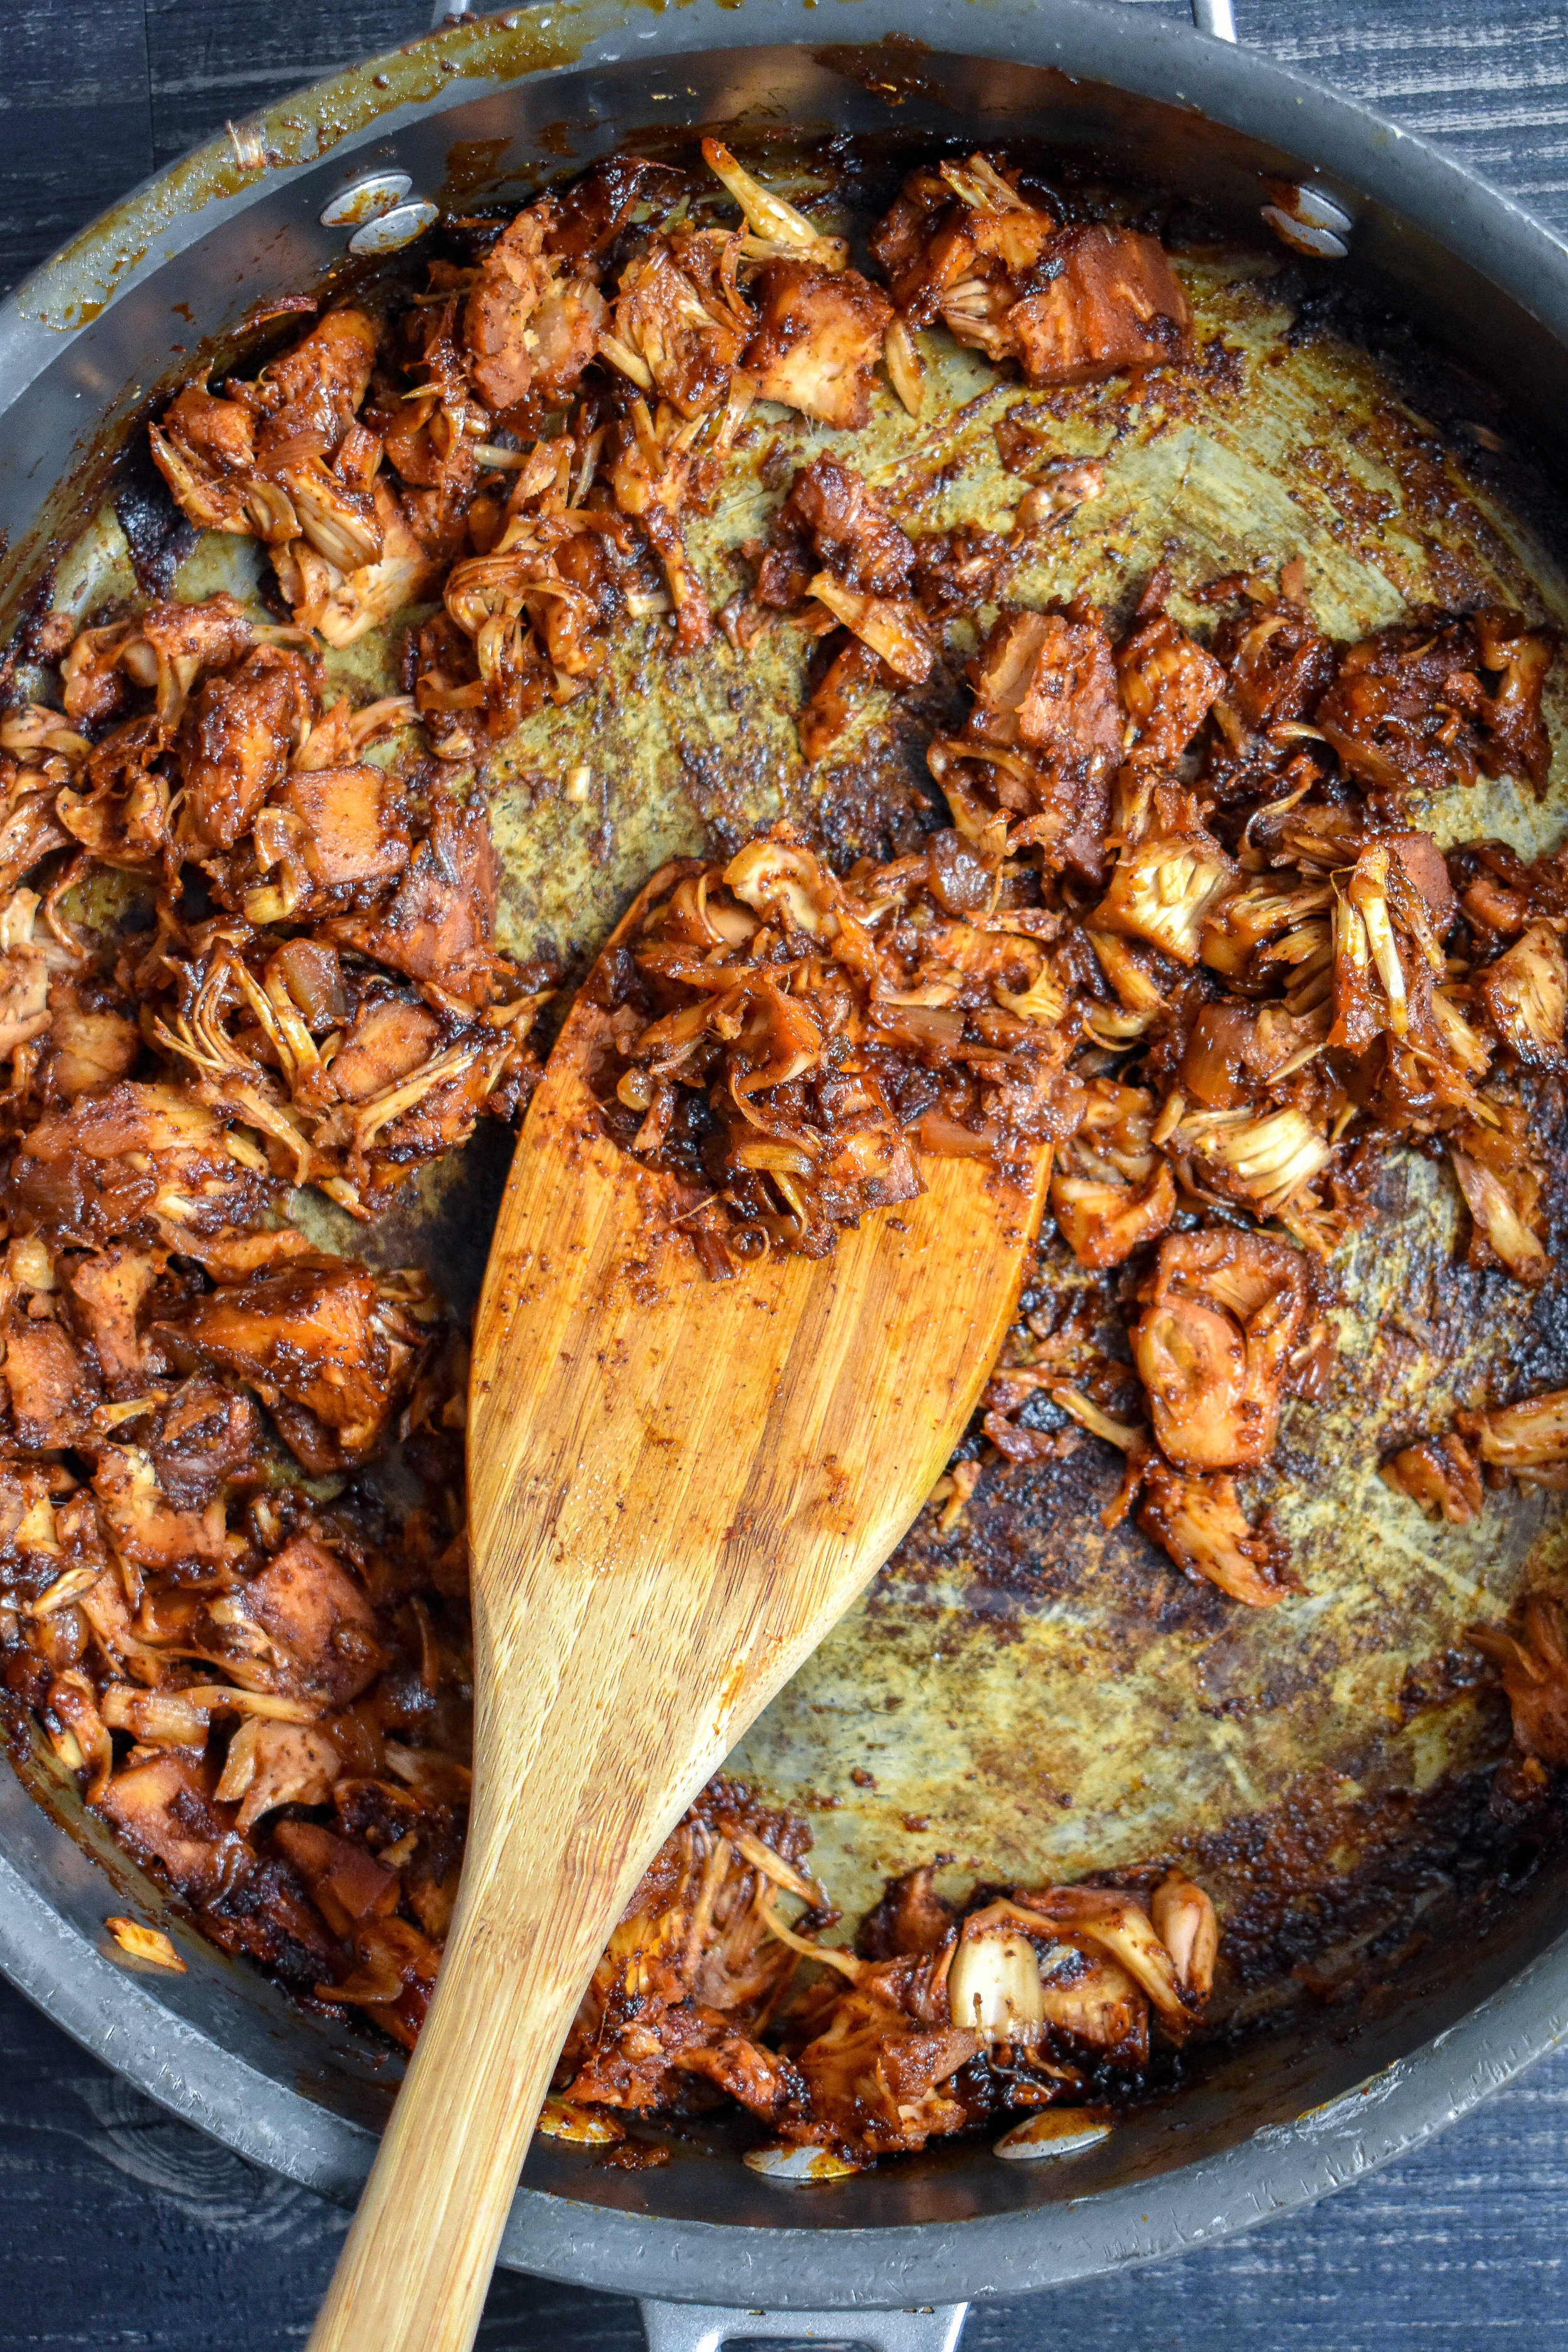 2. Next, add in the BBQ sauce + broth and cook over medium-low heat for 10-15 minutes until the jackfruit starts to get stringy.